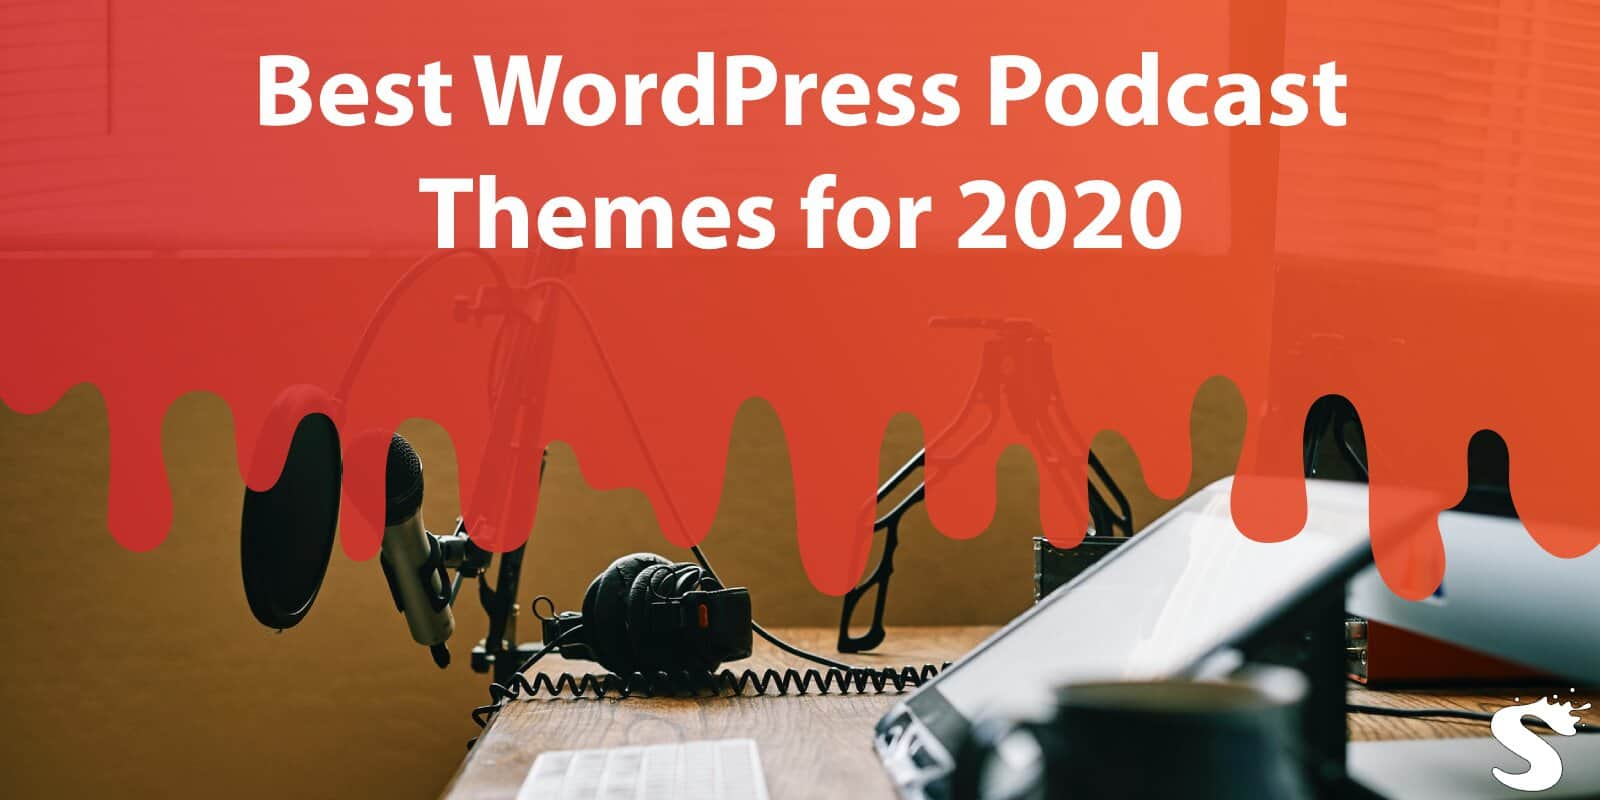 15 Best Wordpress Podcast Themes for 2020